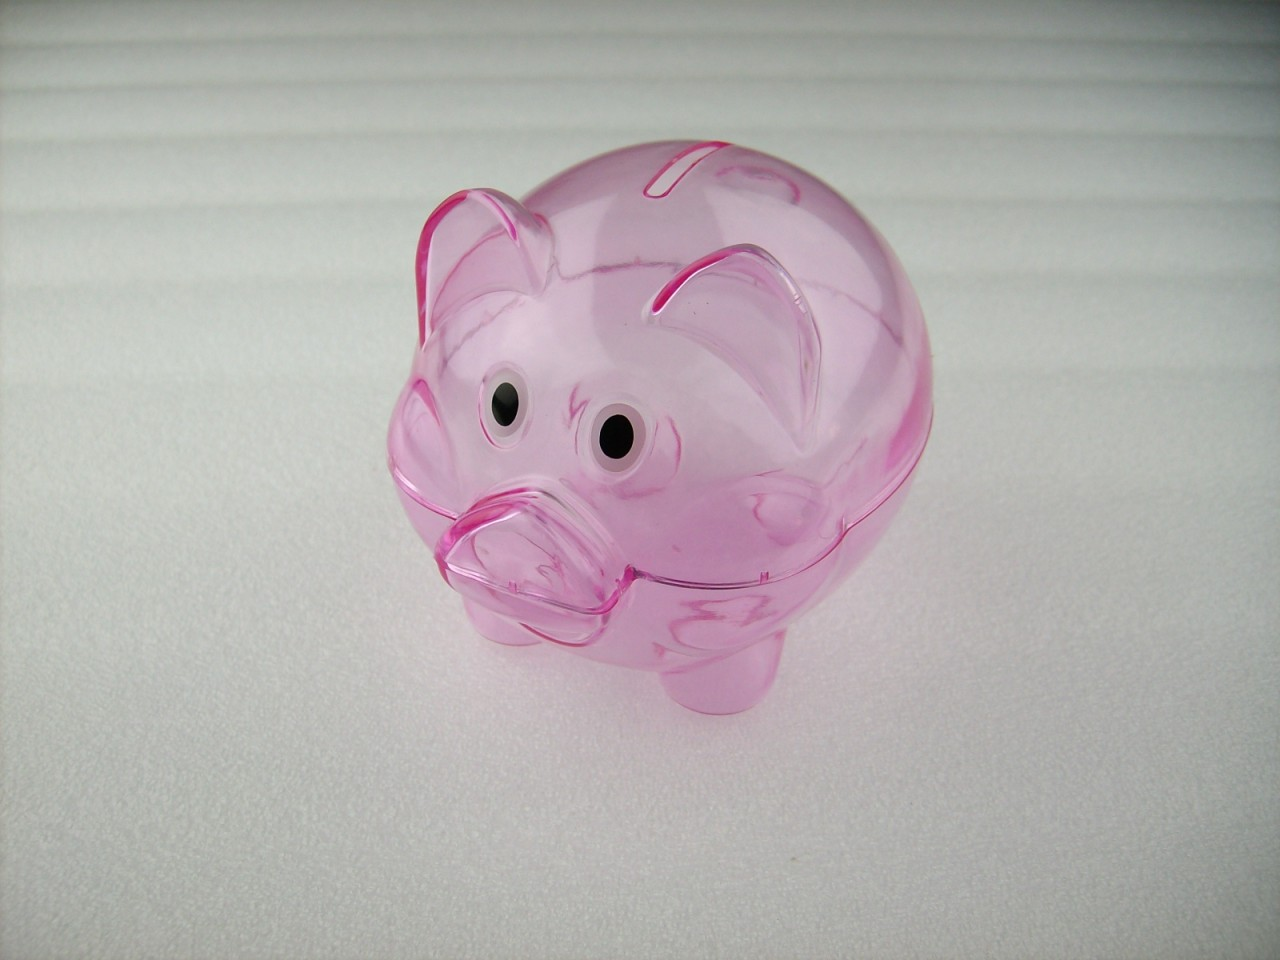 Pink Plastic Piggy Banks Mini Transparent Plastic Coin Pig Piggy Money Bank Pink